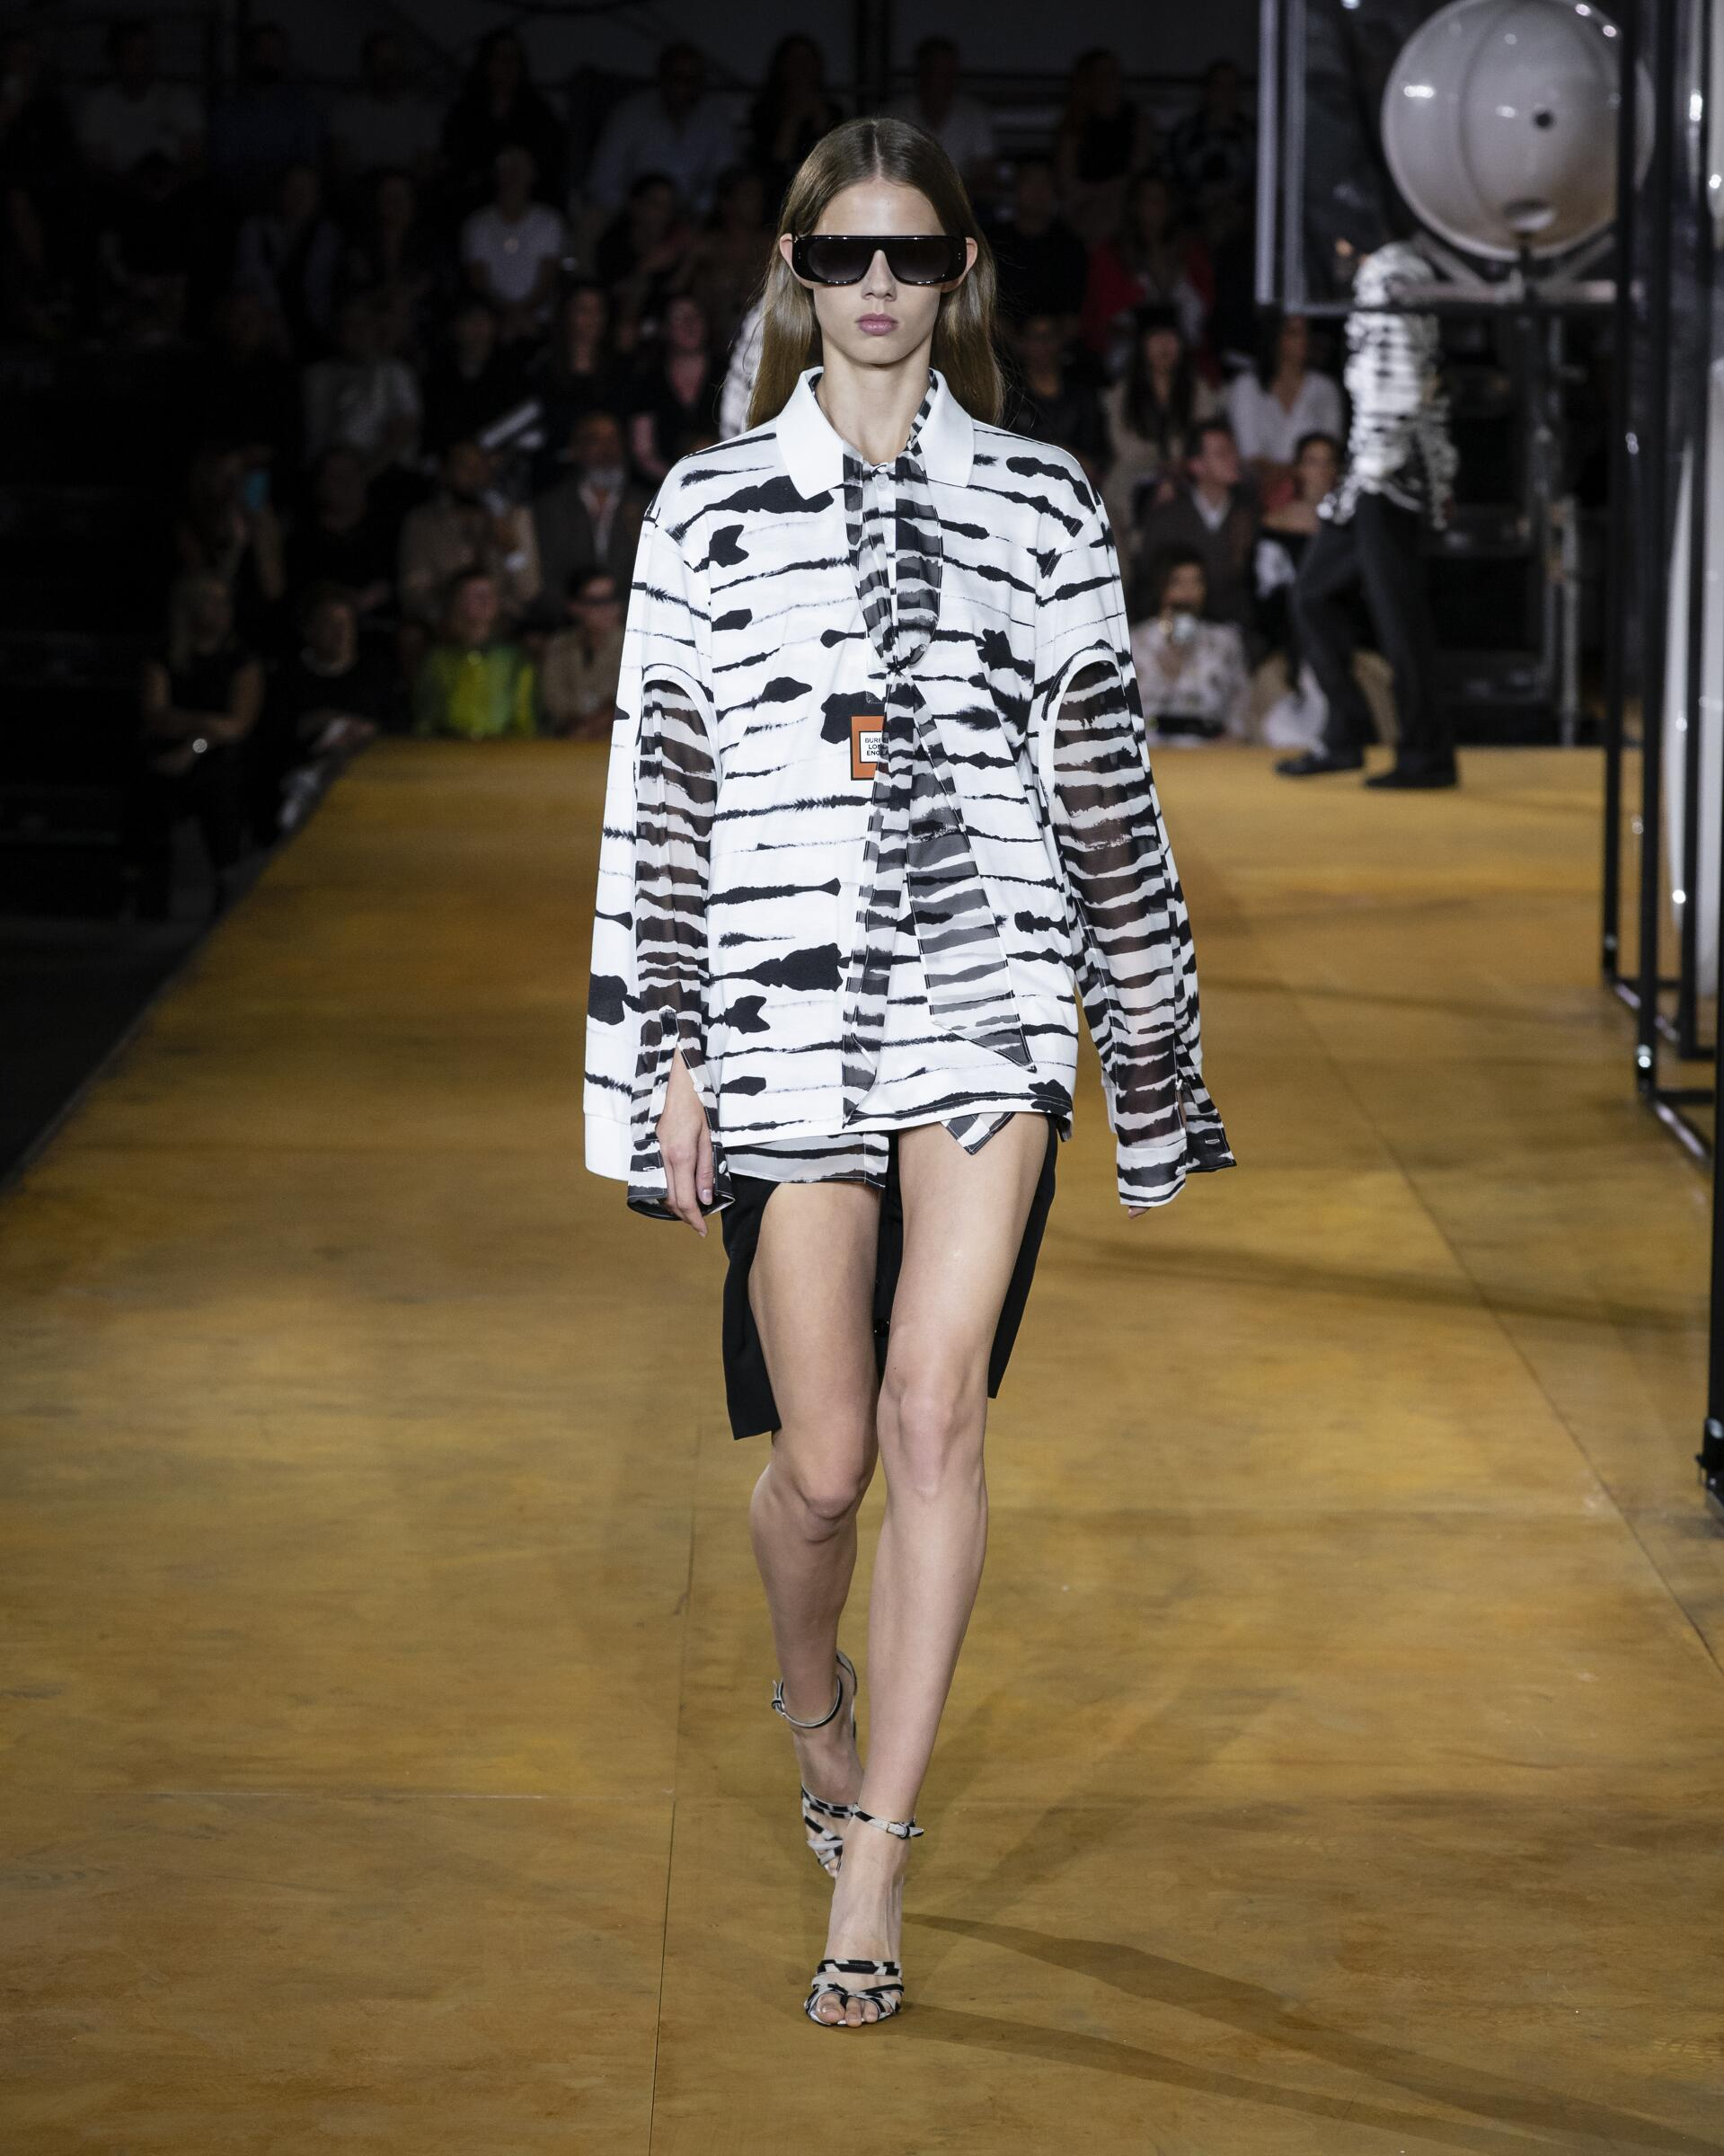 2020 Burberry Trends London Fashion Week